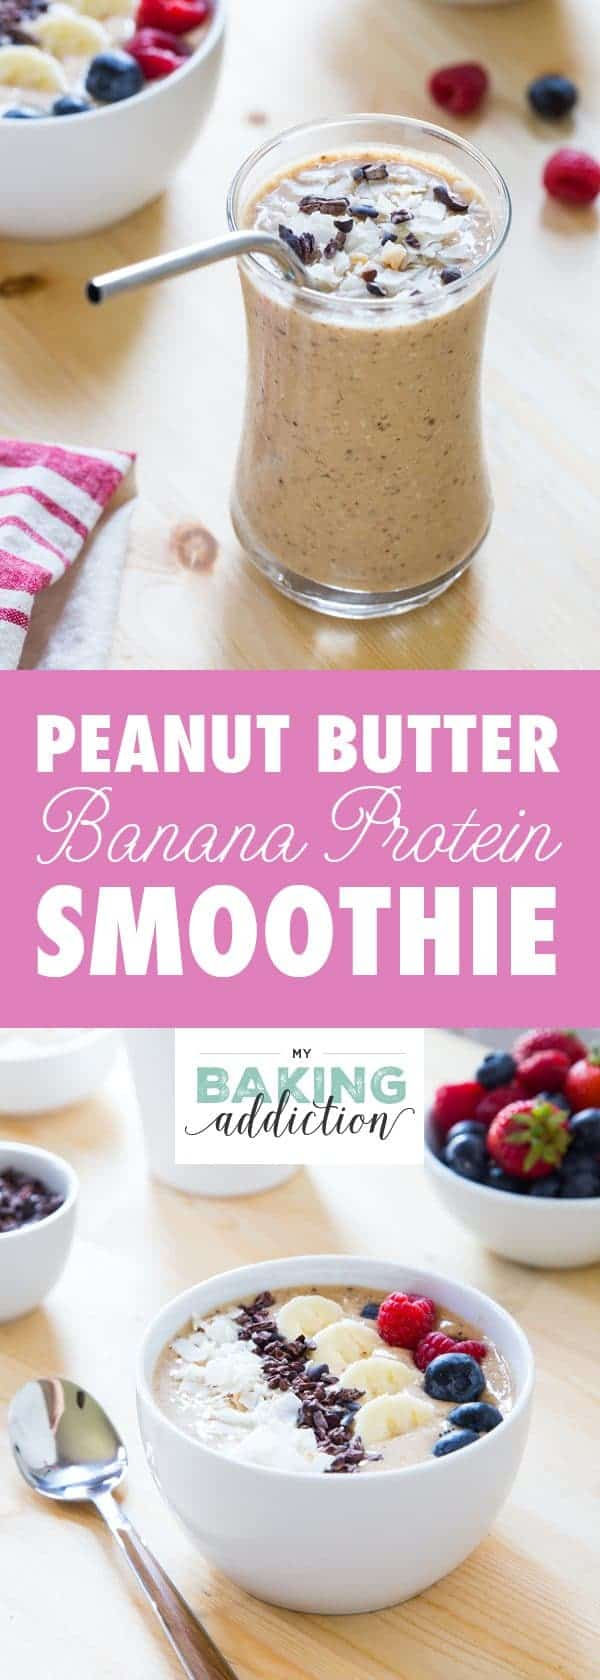 This Peanut Butter Banana Protein Smoothie is loaded with good for you ingredients! Perfect for busy mornings!